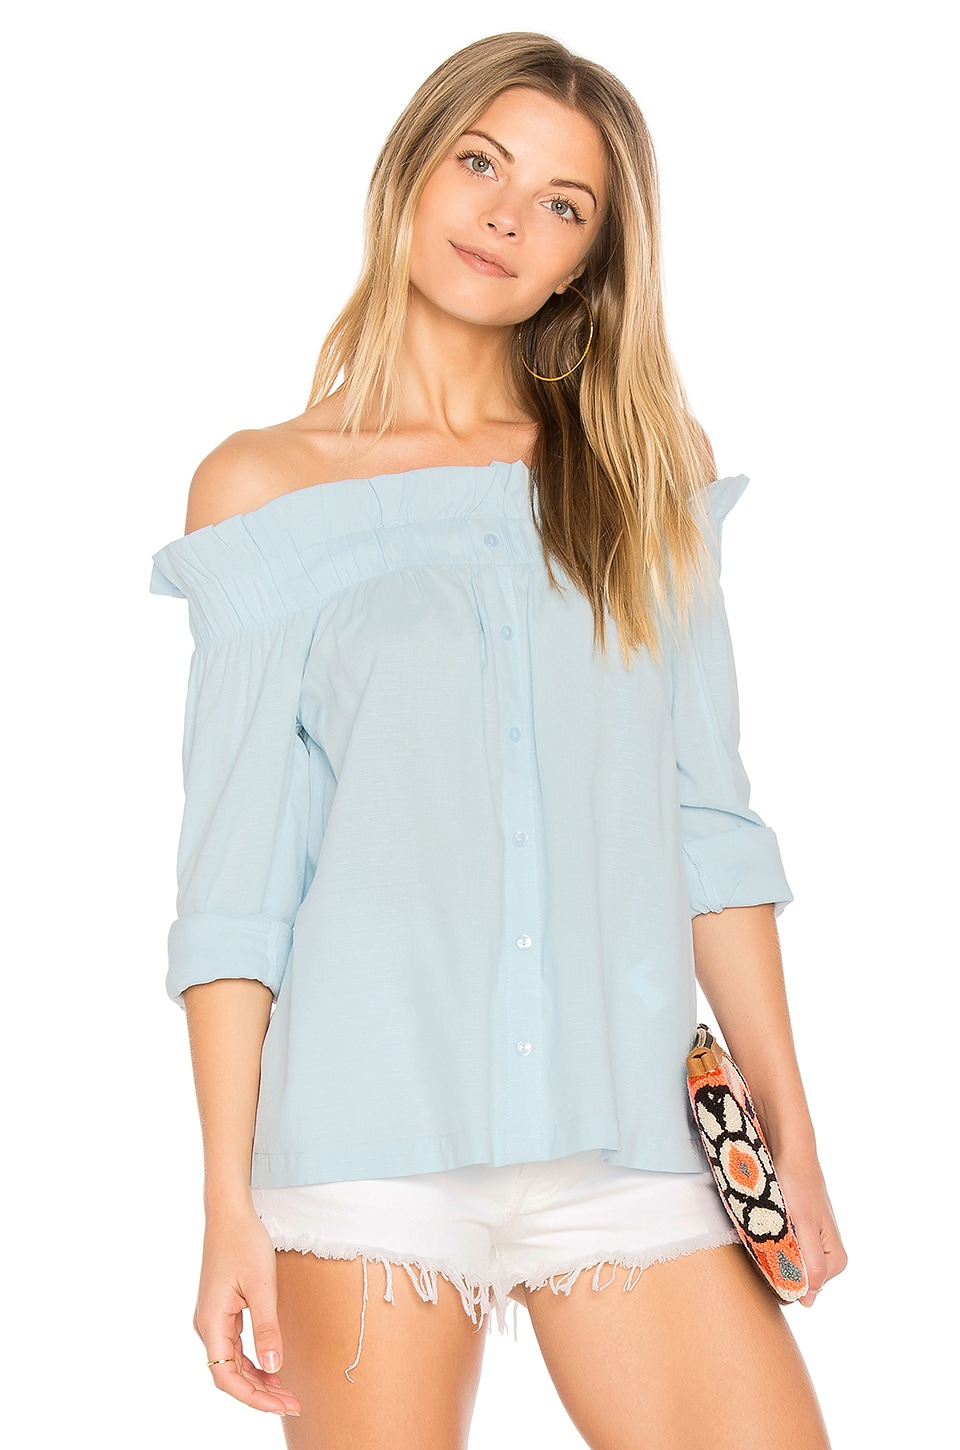 Business Class Off Shoulder Top by Minkpink